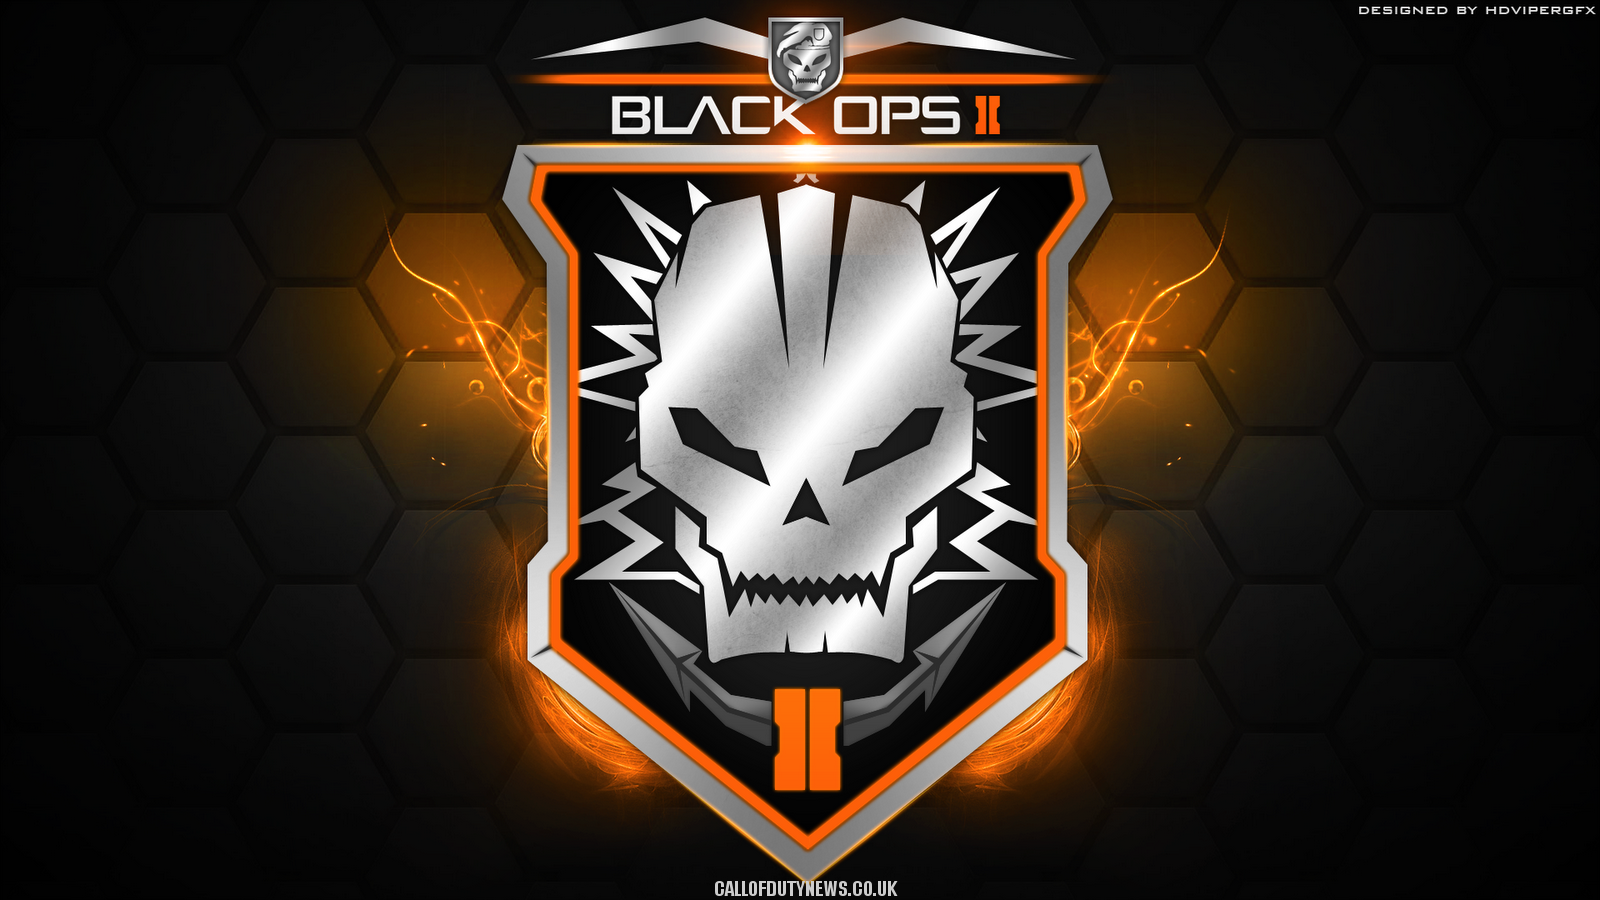 Http Callofdutynews Co Uk Wp Content Uploads 2012 07 Black Ops 2